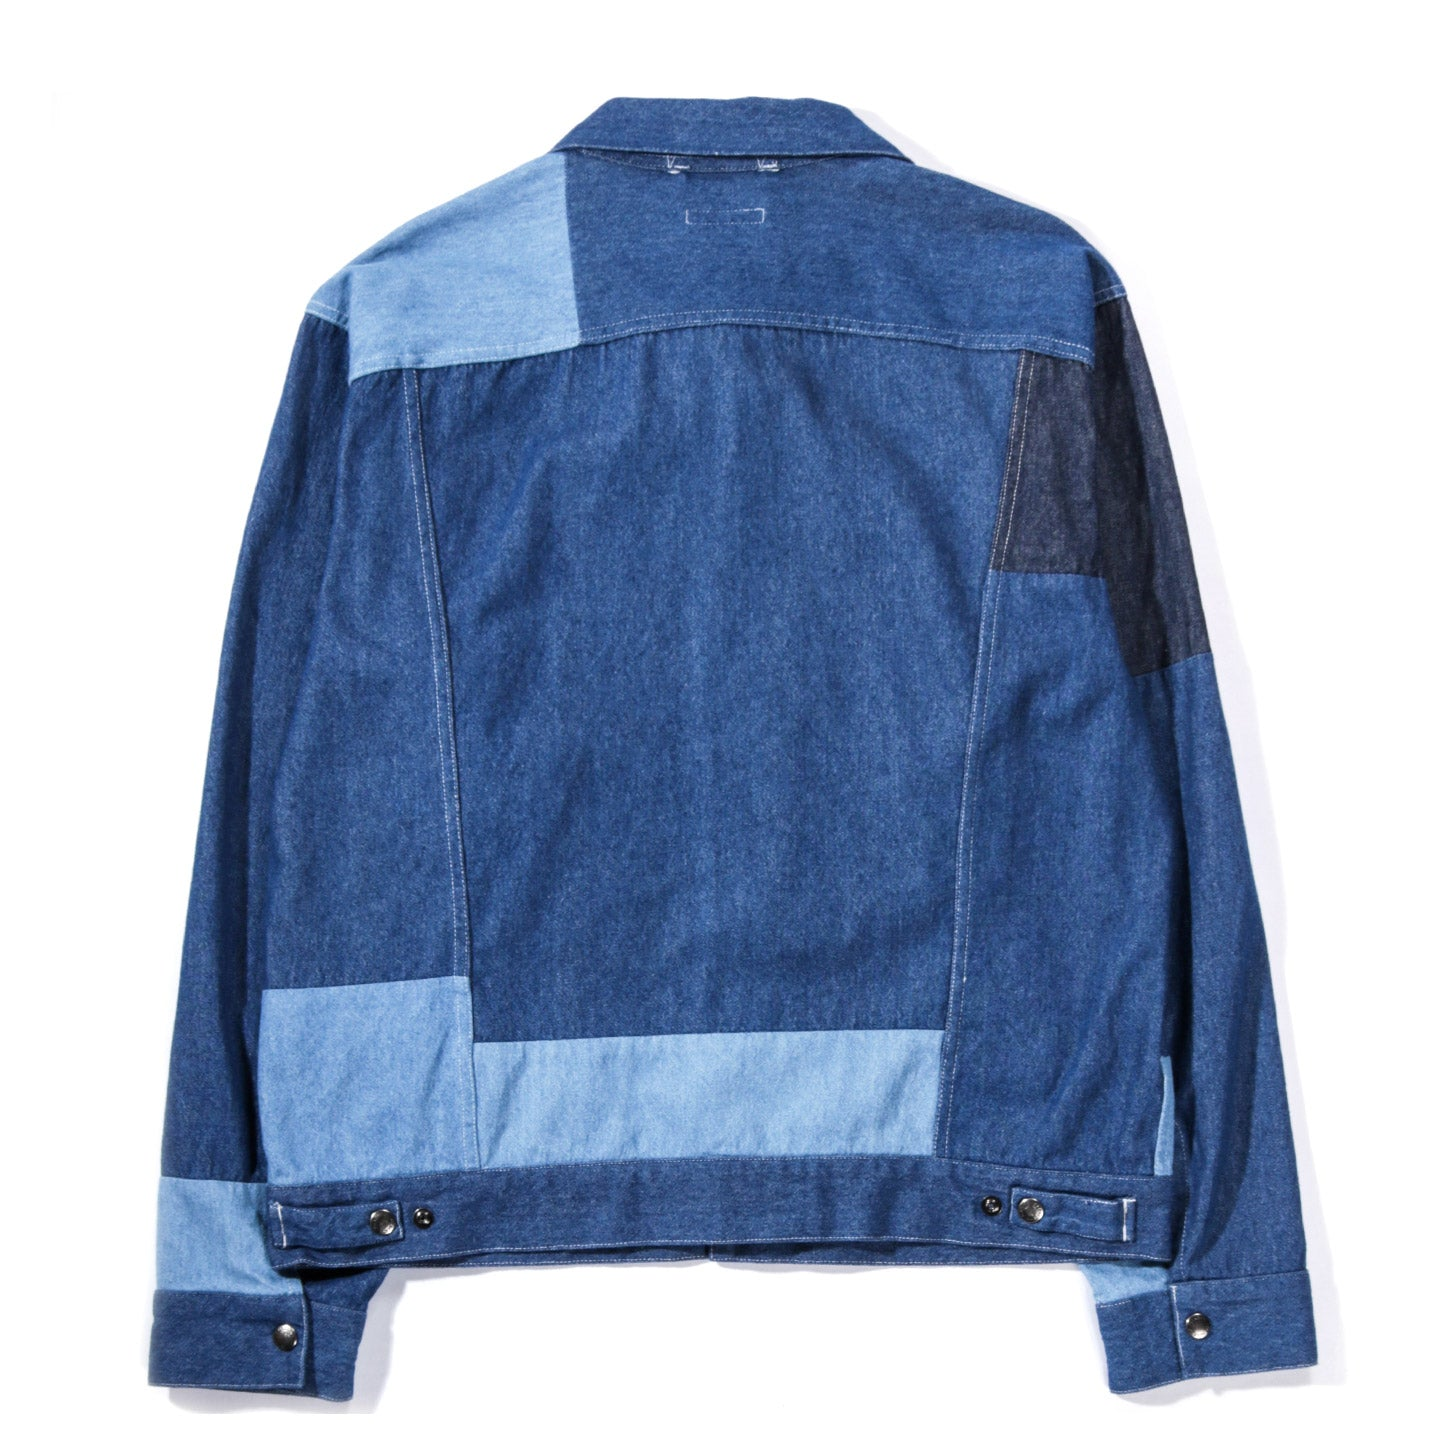 ENGINEERED GARMENTS TRUCKER JACKET MED 8 OZ DENIM